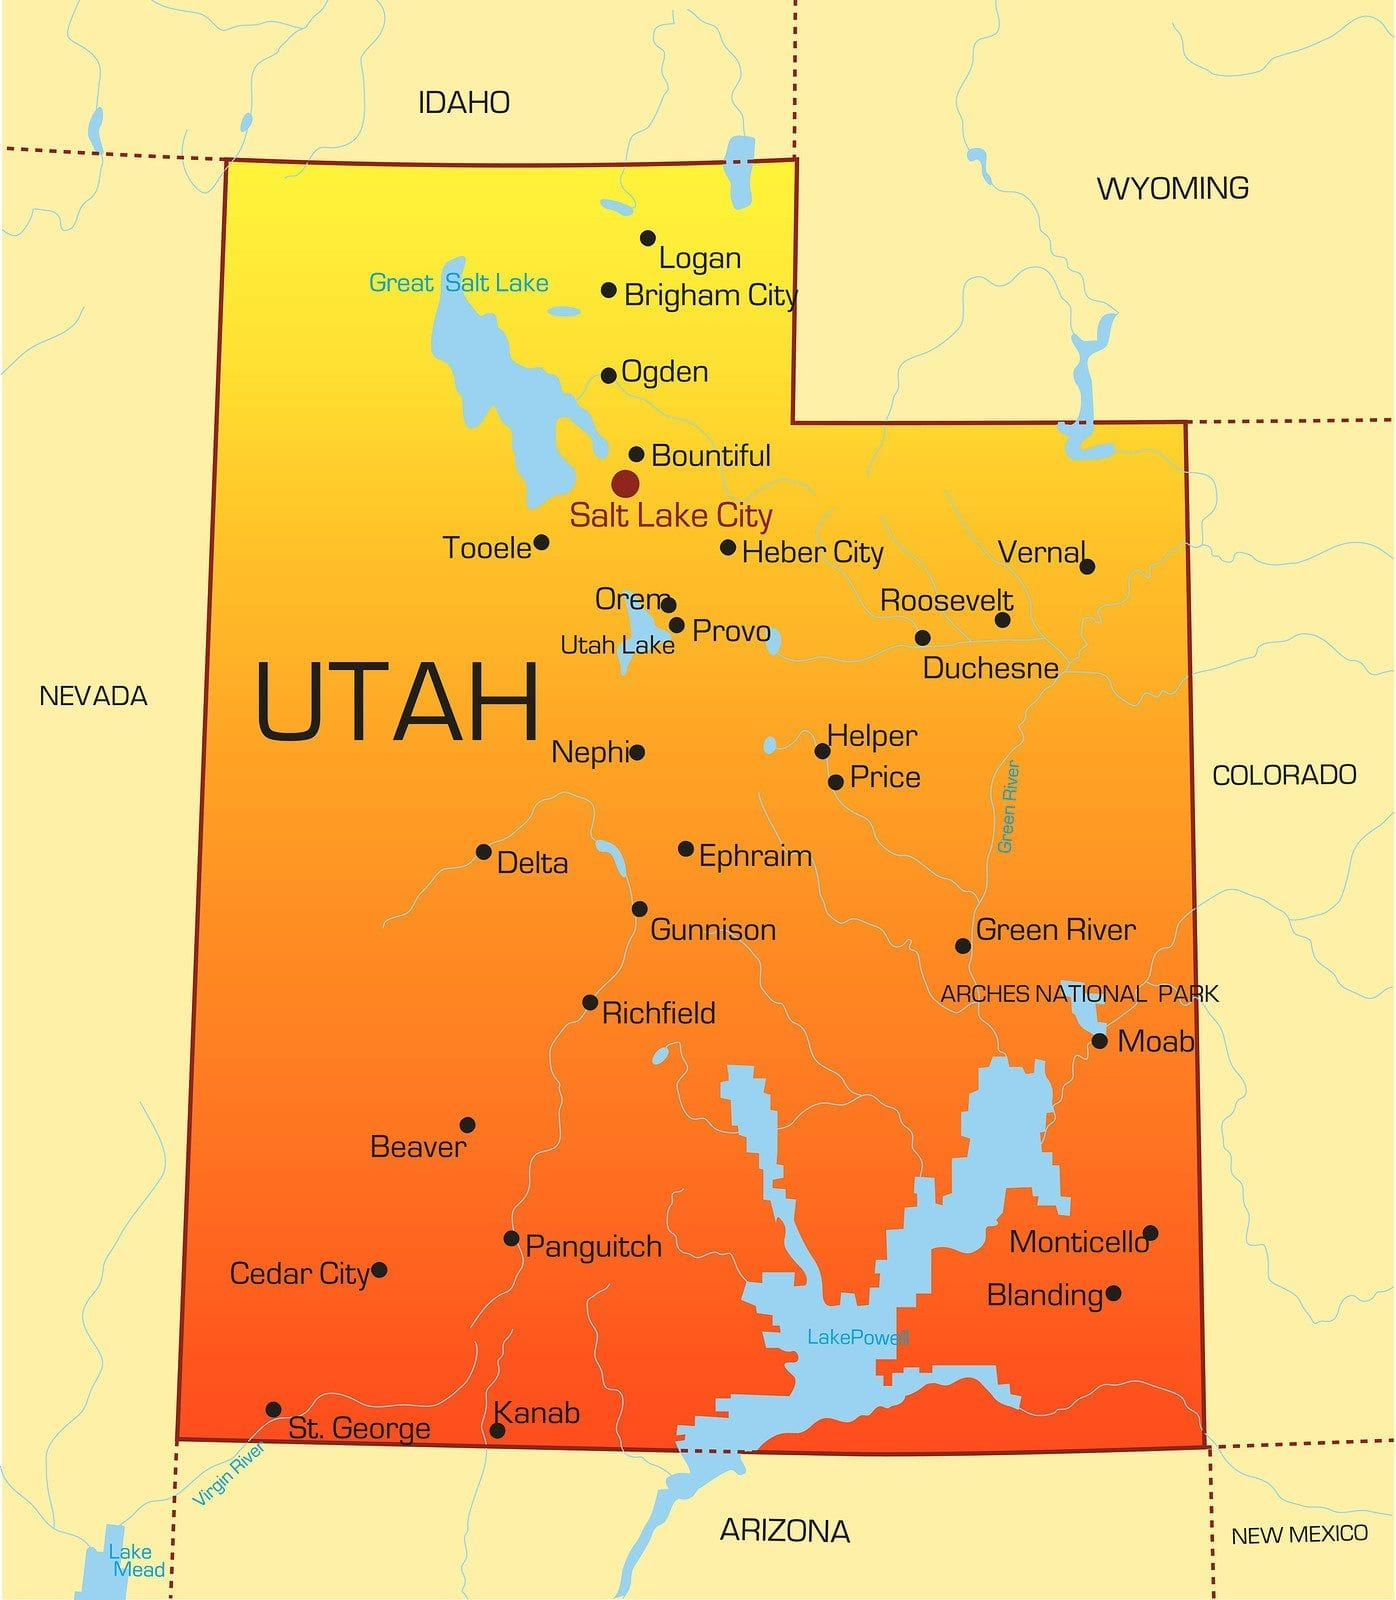 Utah LPN Requirements and Training Programs